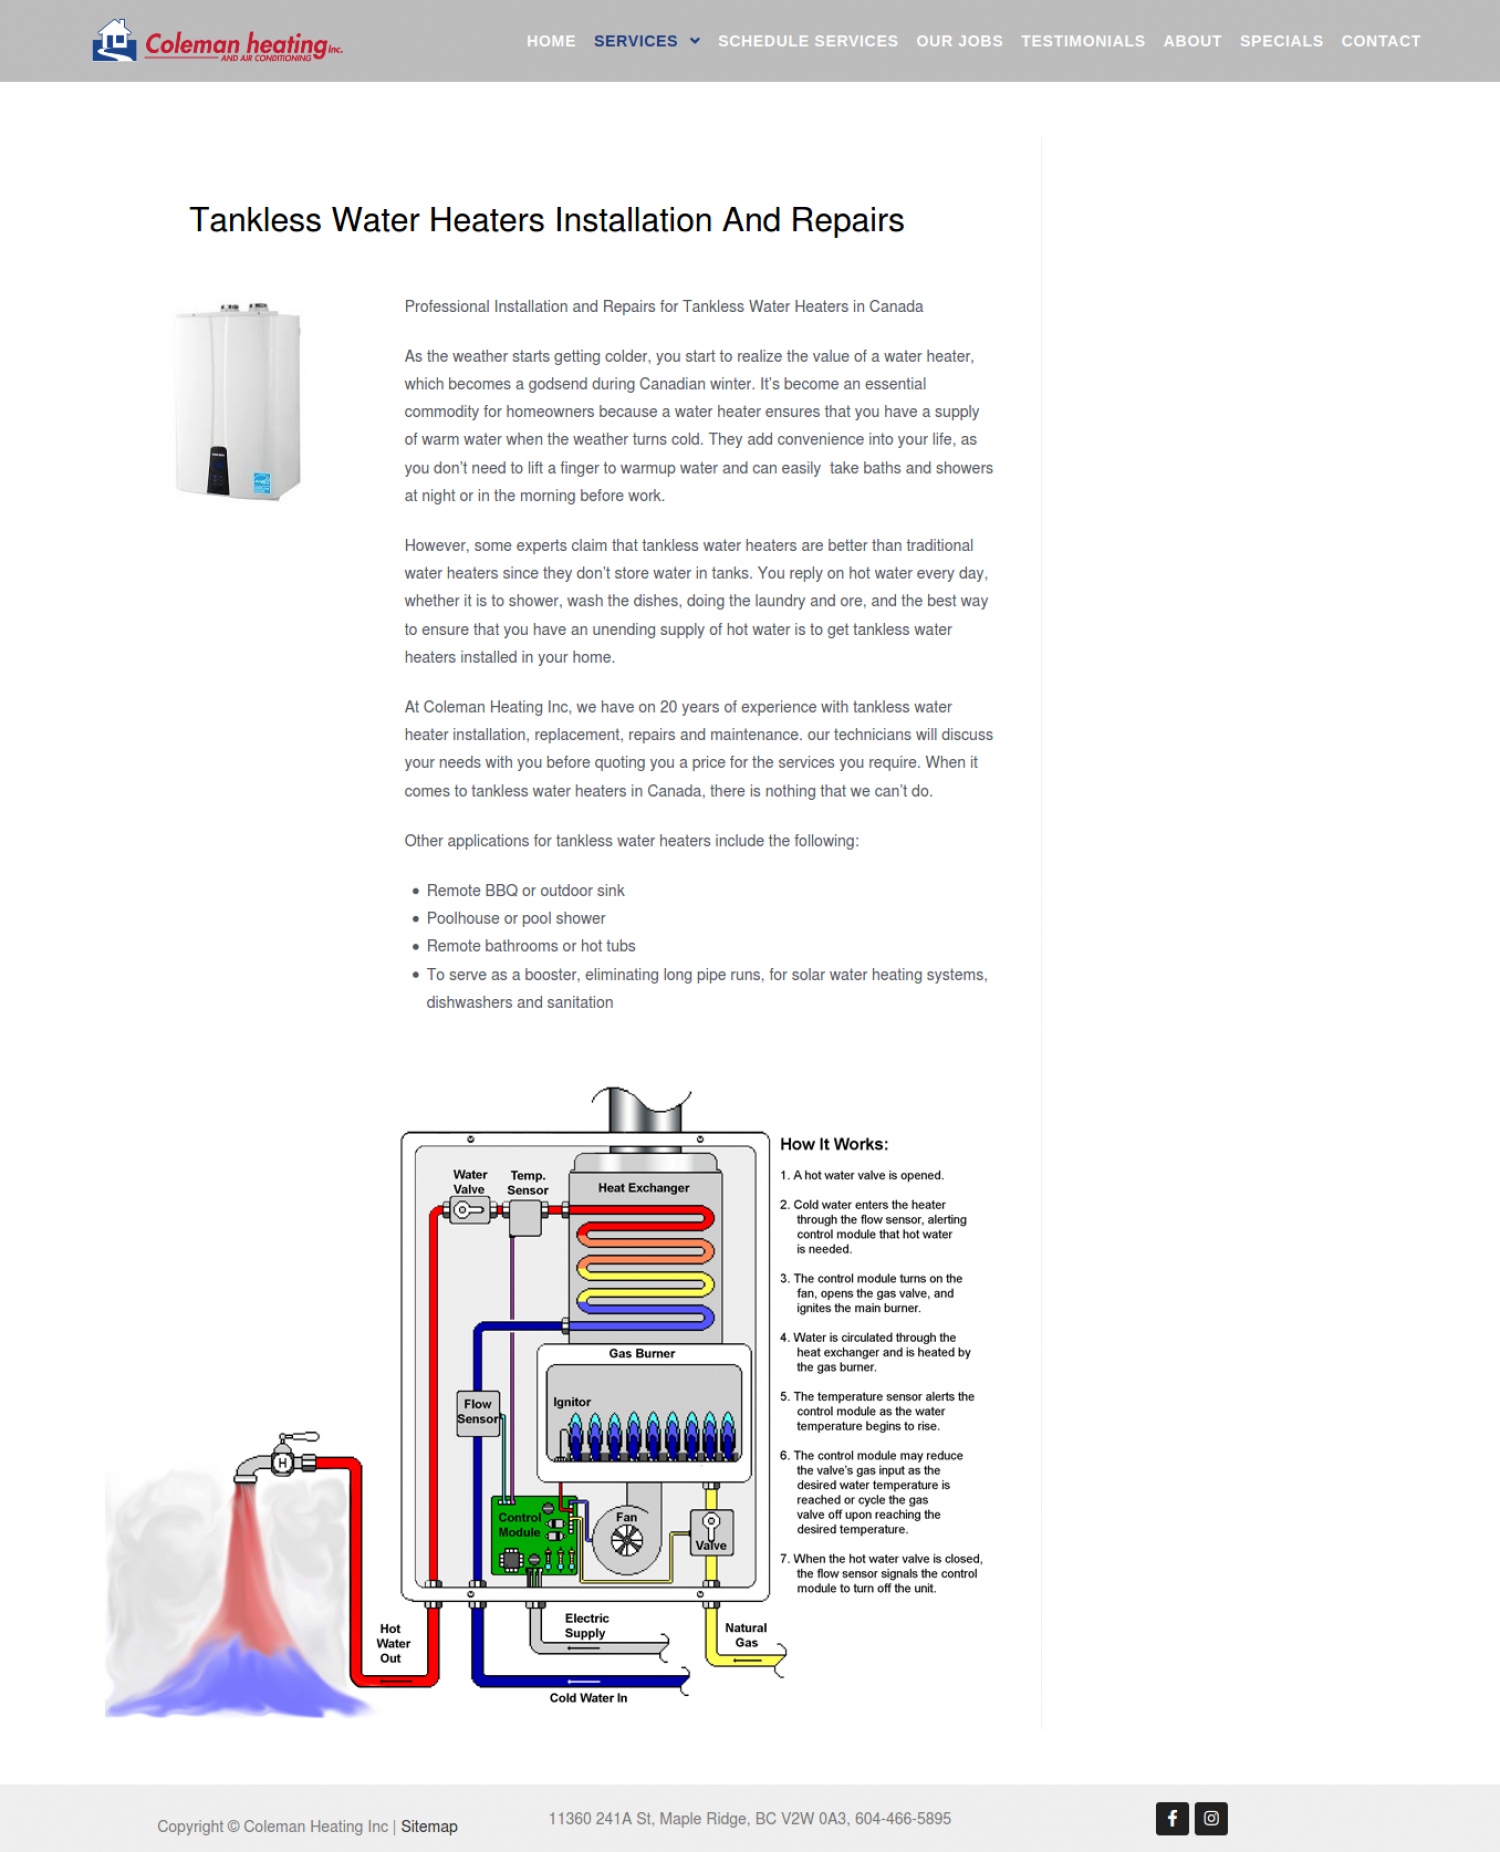 Tankless Water Heaters Installation Infographic